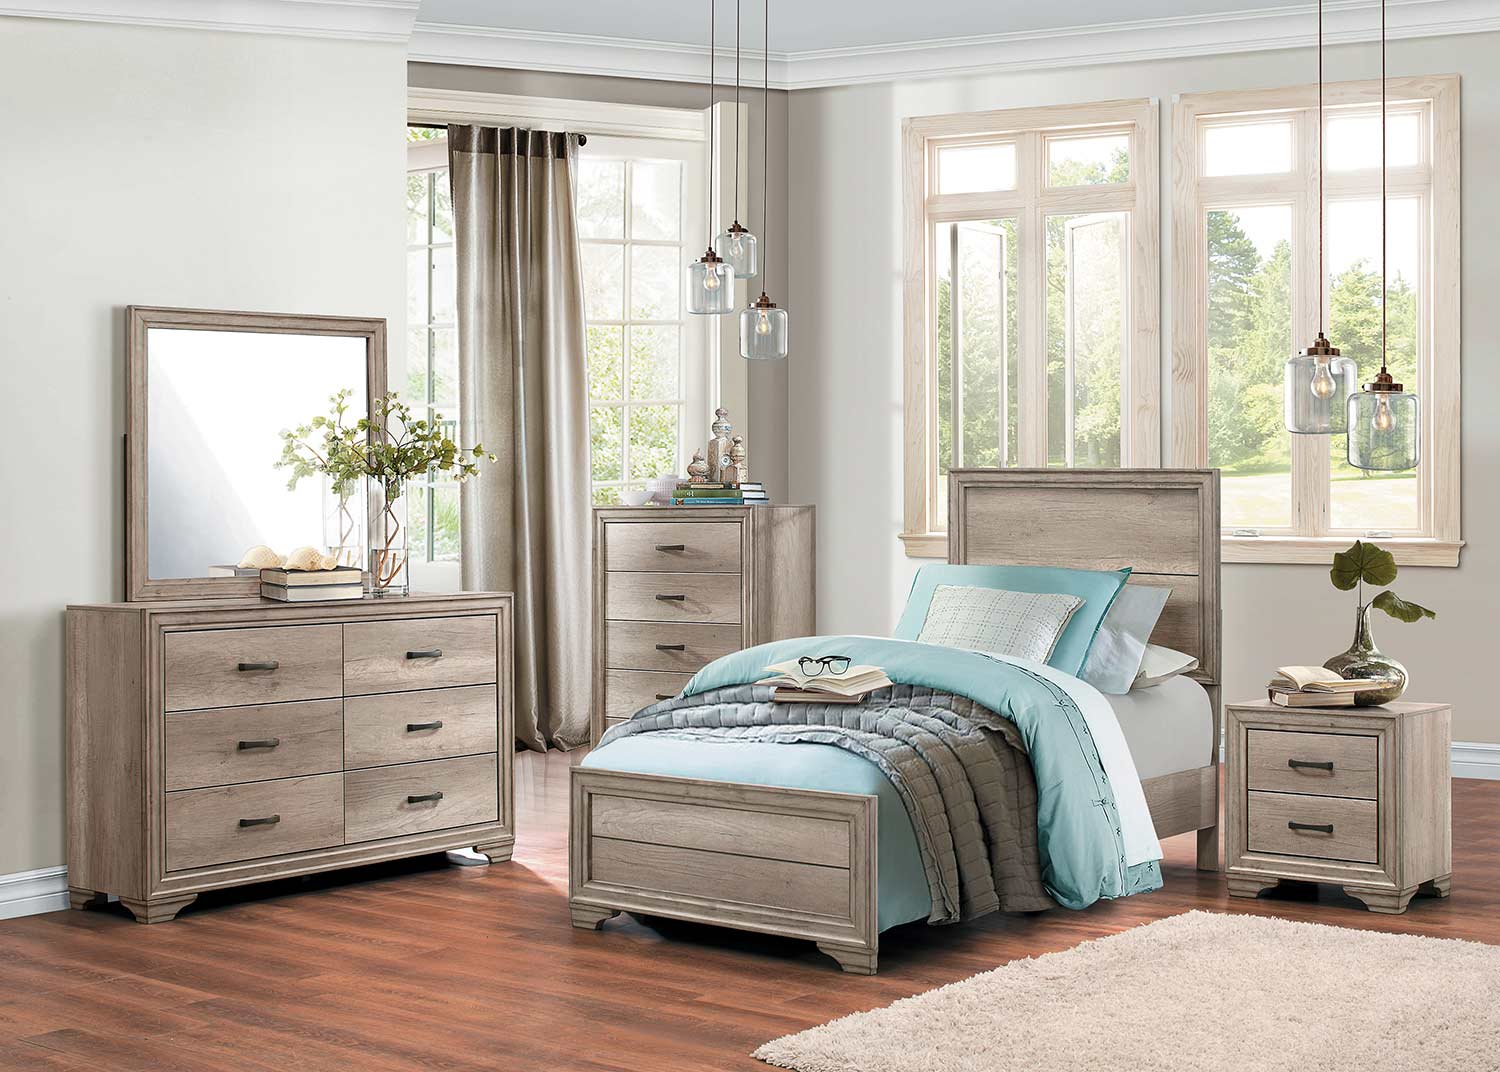 Homelegance Lonan Bedroom Set